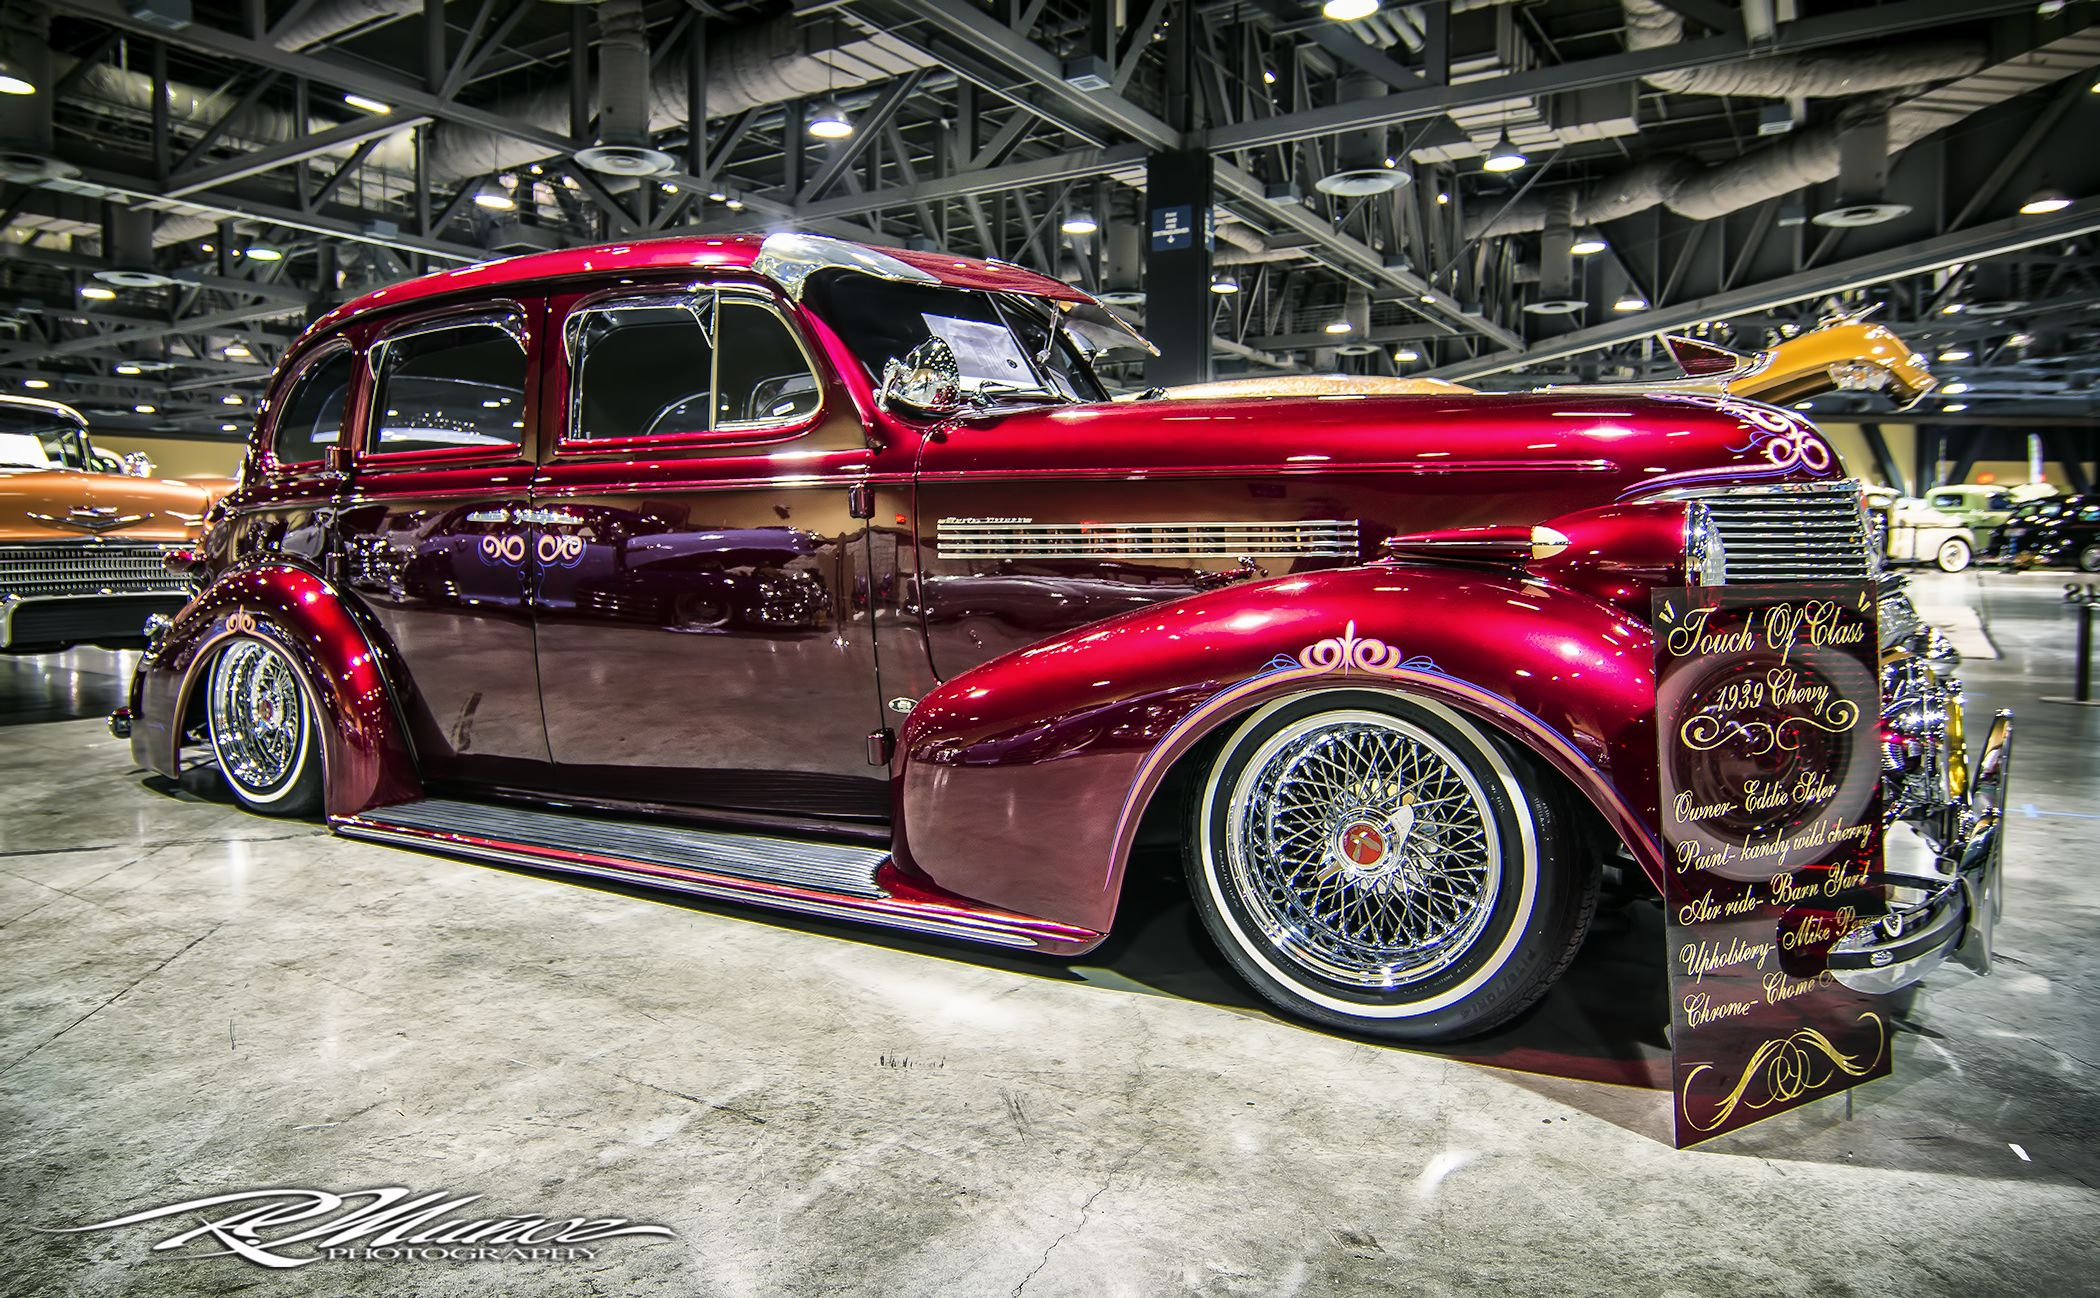 1939 Chevy Master Deluxe Lowrider Cars Classic Cars Muscle